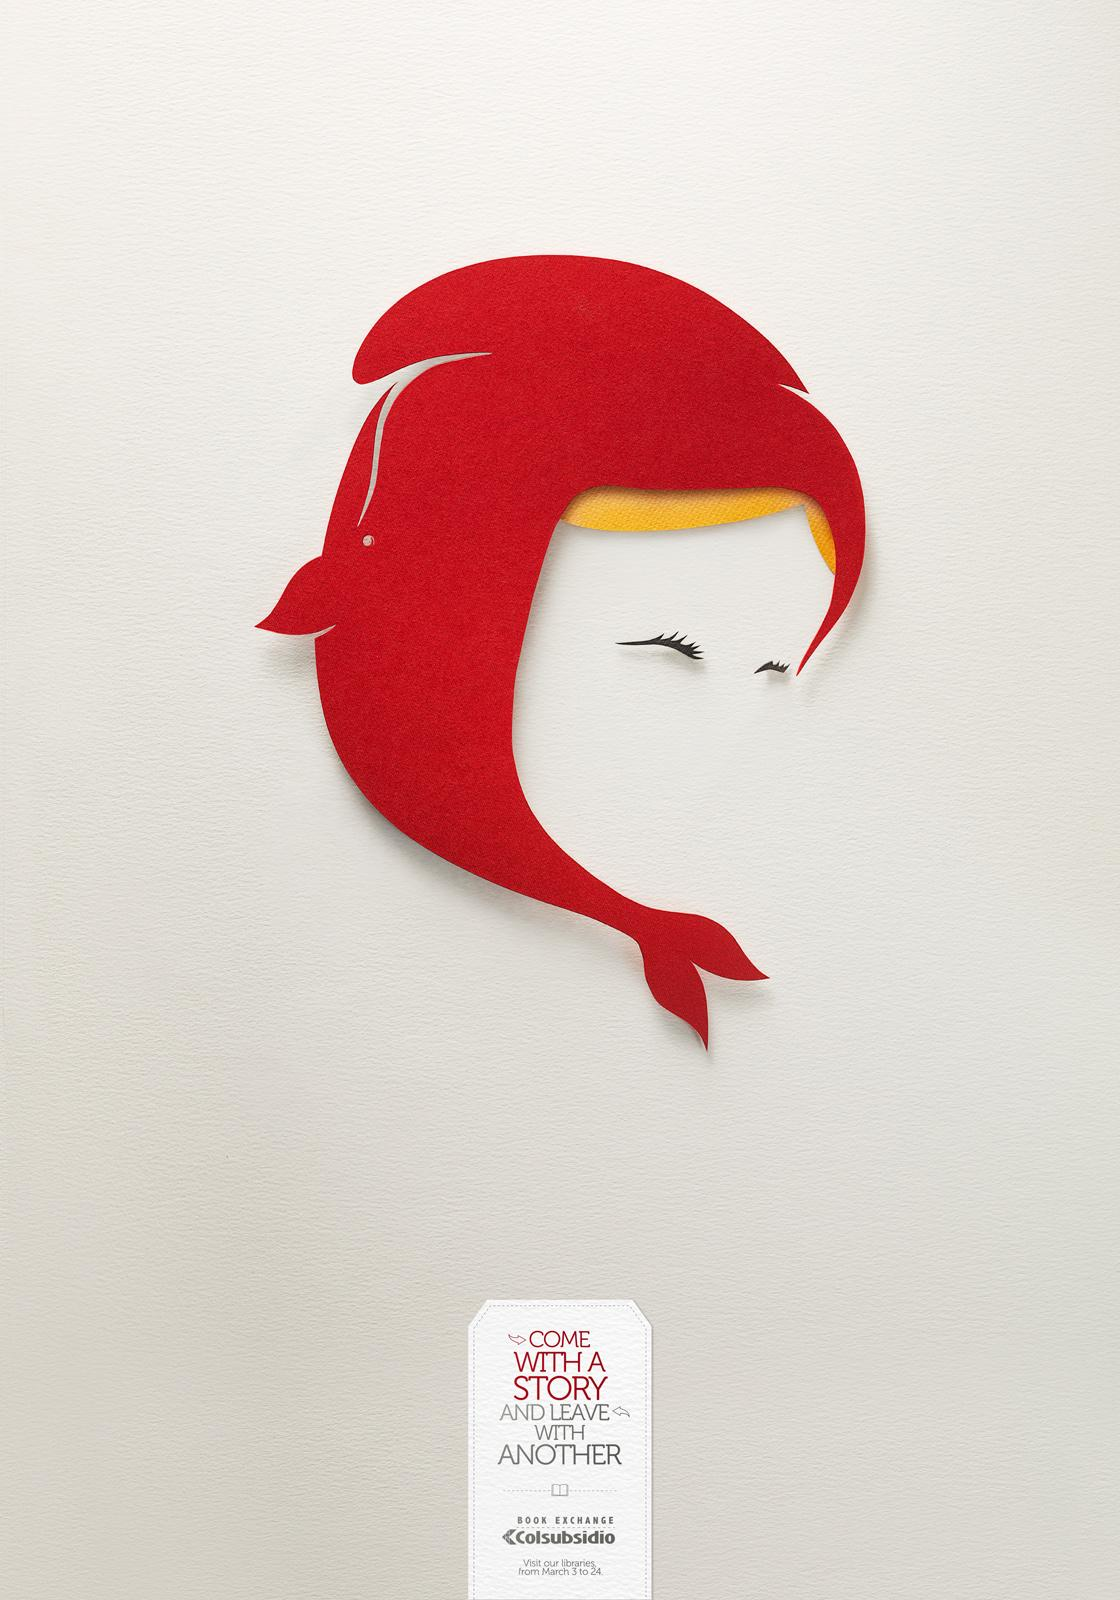 Colsubsidio Print Ad -  Llttle red riding hood and Moby Dick